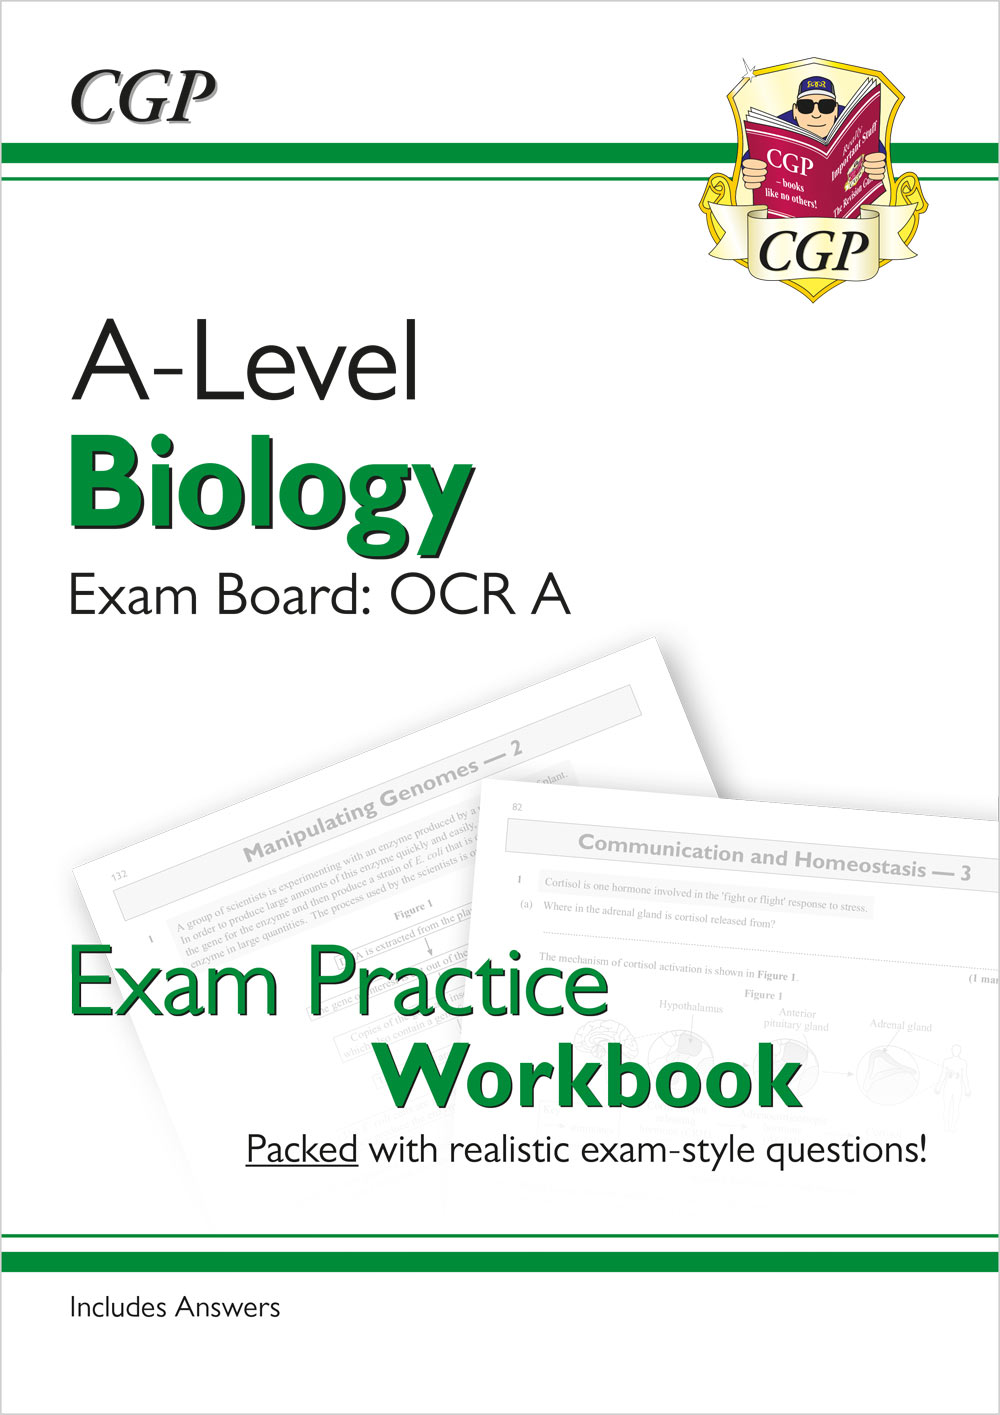 BRAQ71 - A-Level Biology: OCR A Year 1 & 2 Exam Practice Workbook - includes Answers